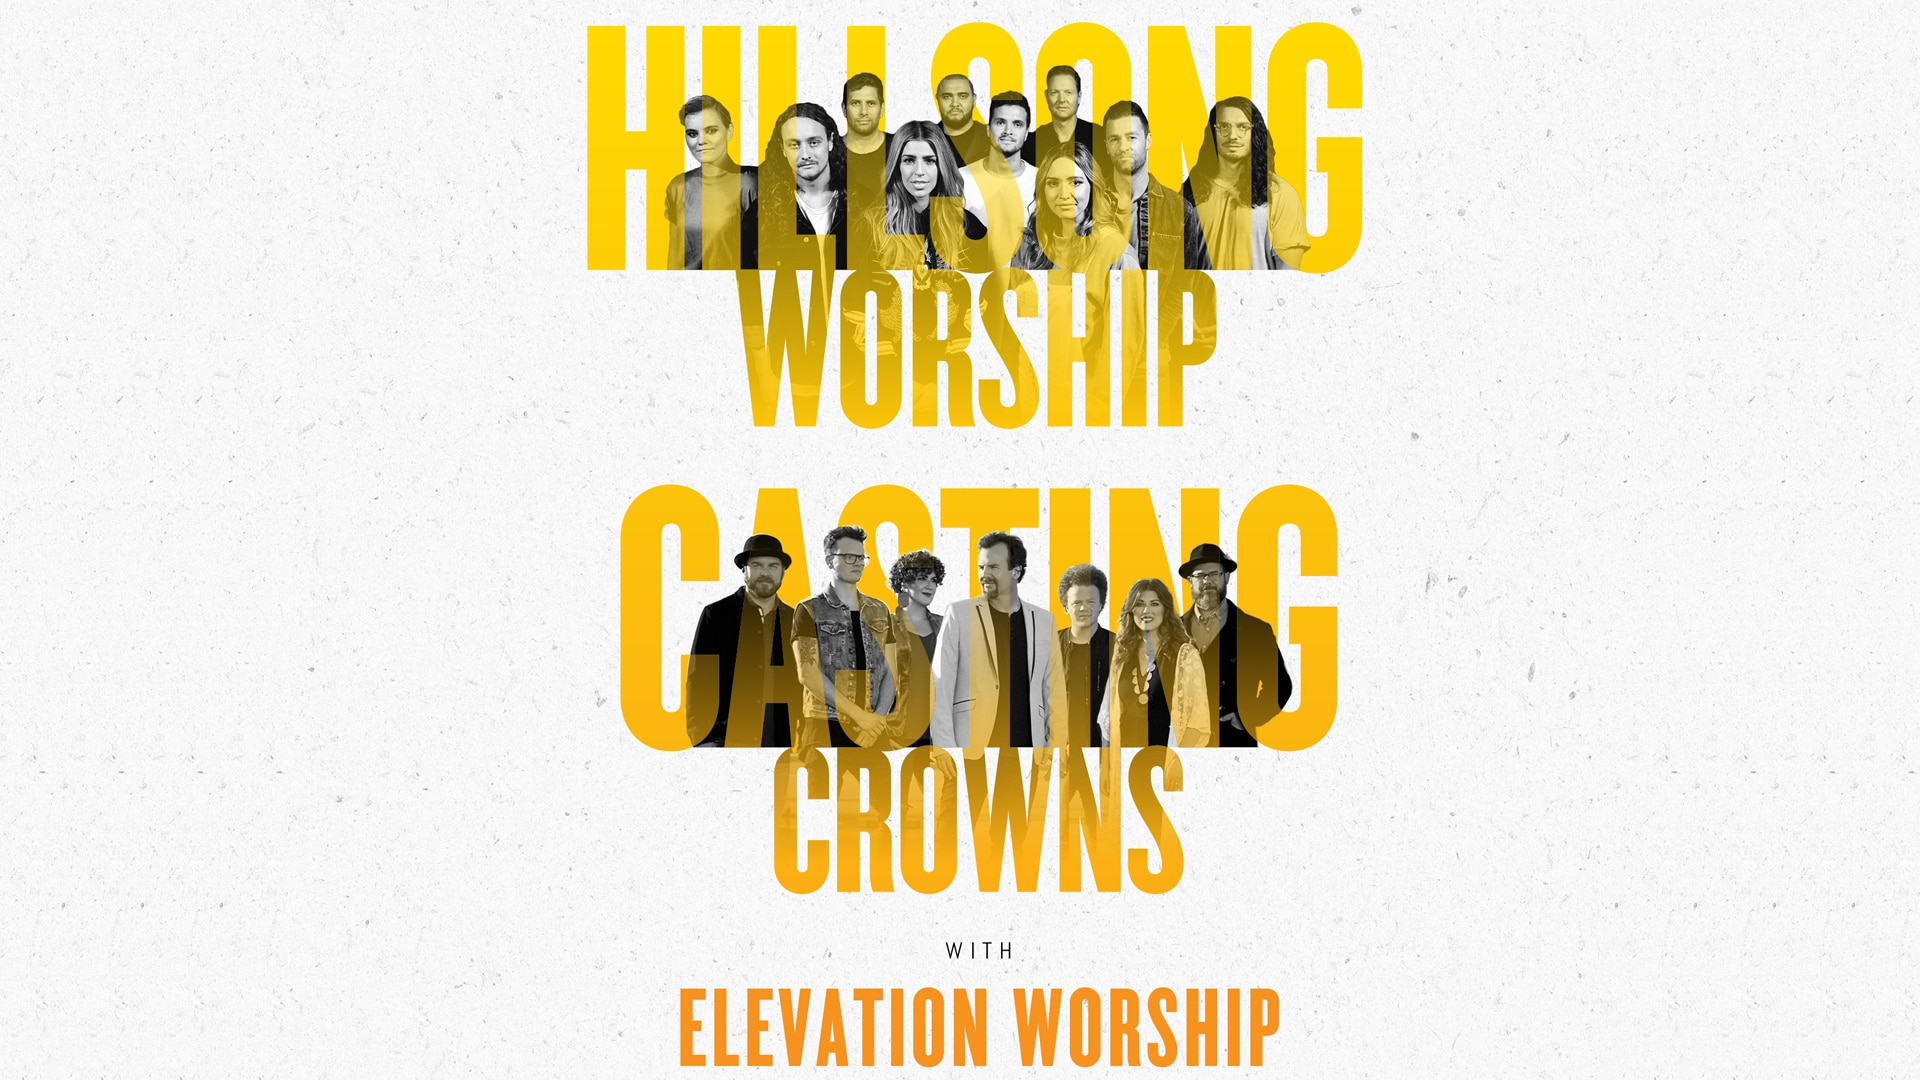 Hillsong Worship/Casting Crowns/Elevation Worship - USA Tour